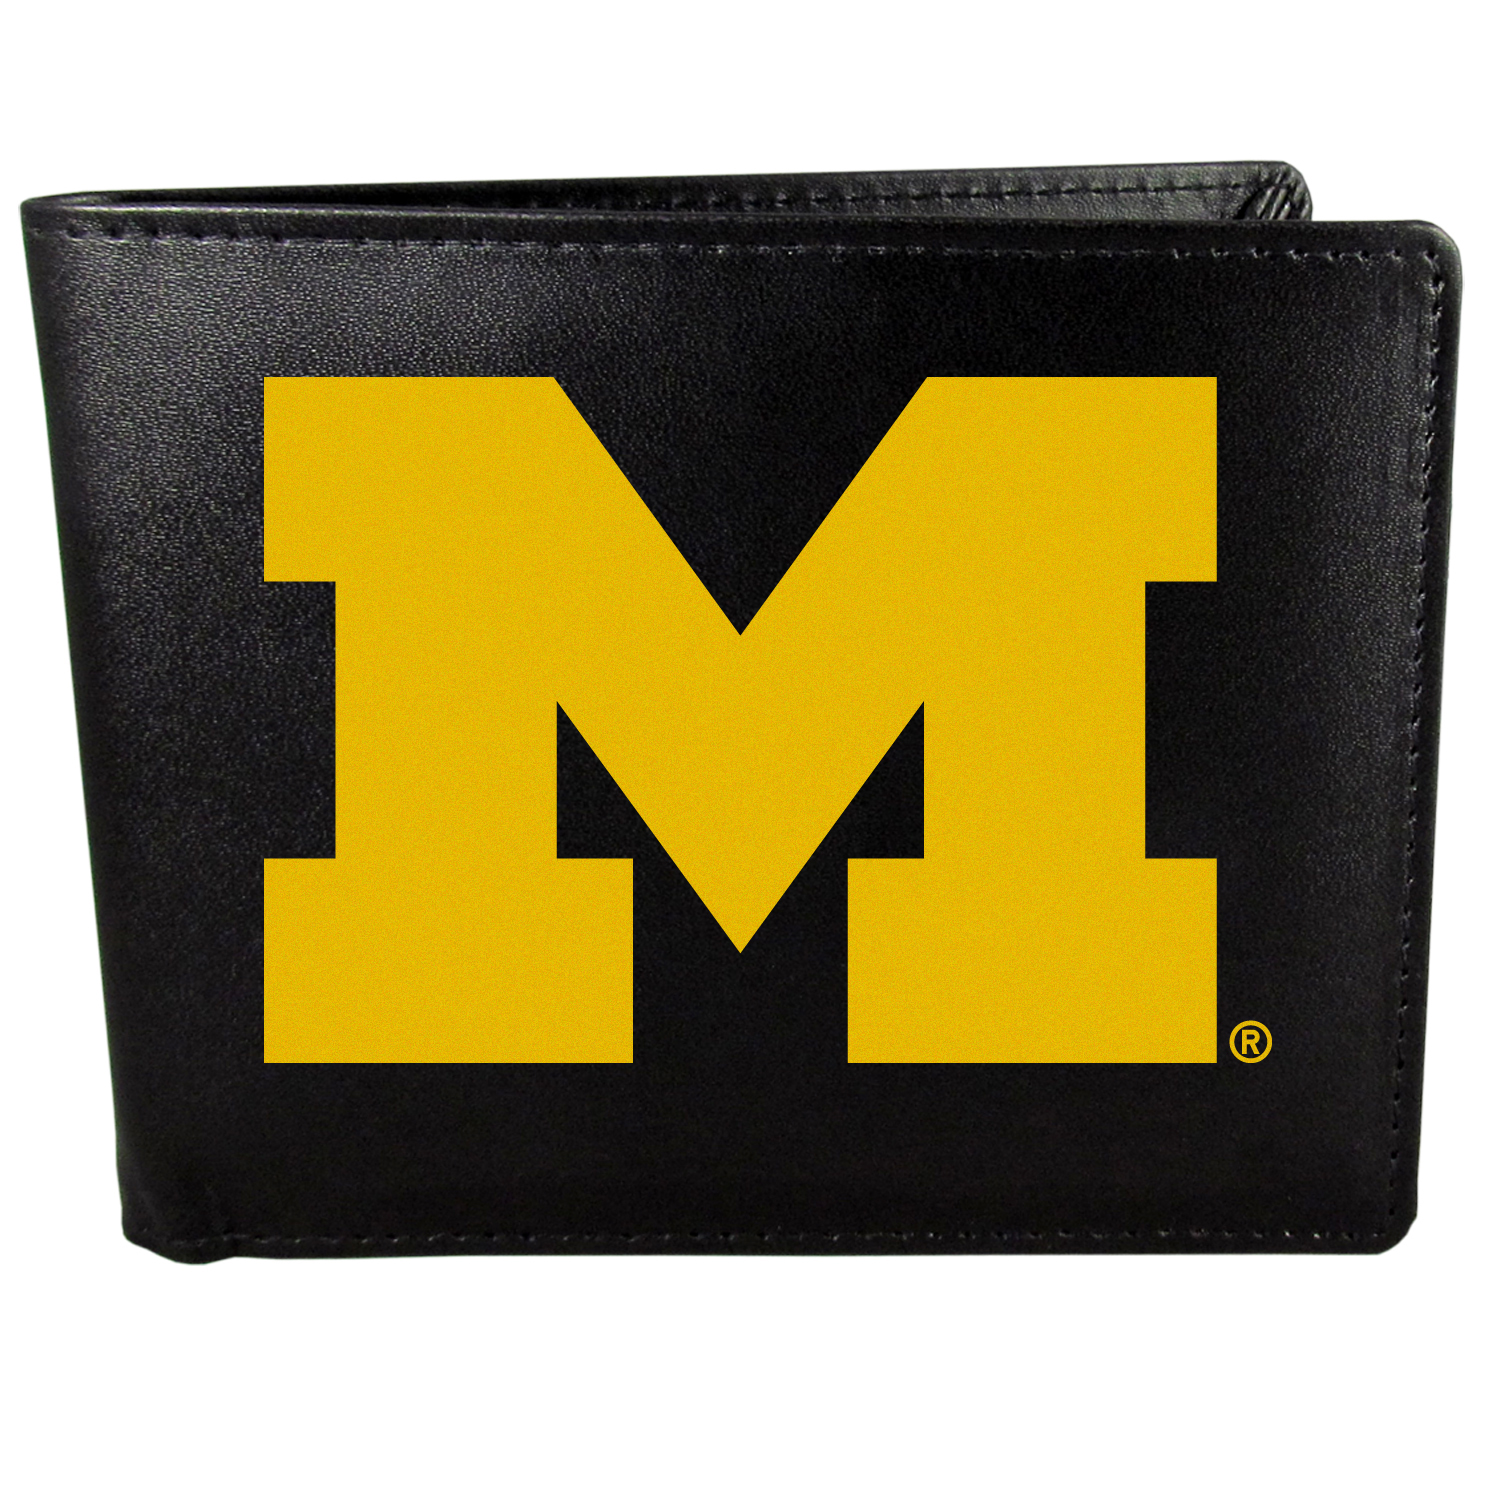 Michigan Wolverines Bi-fold Wallet Large Logo - Sports fans do not have to sacrifice style with this classic bi-fold wallet that sports the Michigan Wolverines extra large logo. This men's fashion accessory has a leather grain look and expert craftmanship for a quality wallet at a great price. The wallet features inner credit card slots, windowed ID slot and a large billfold pocket. The front of the wallet features a printed team logo.